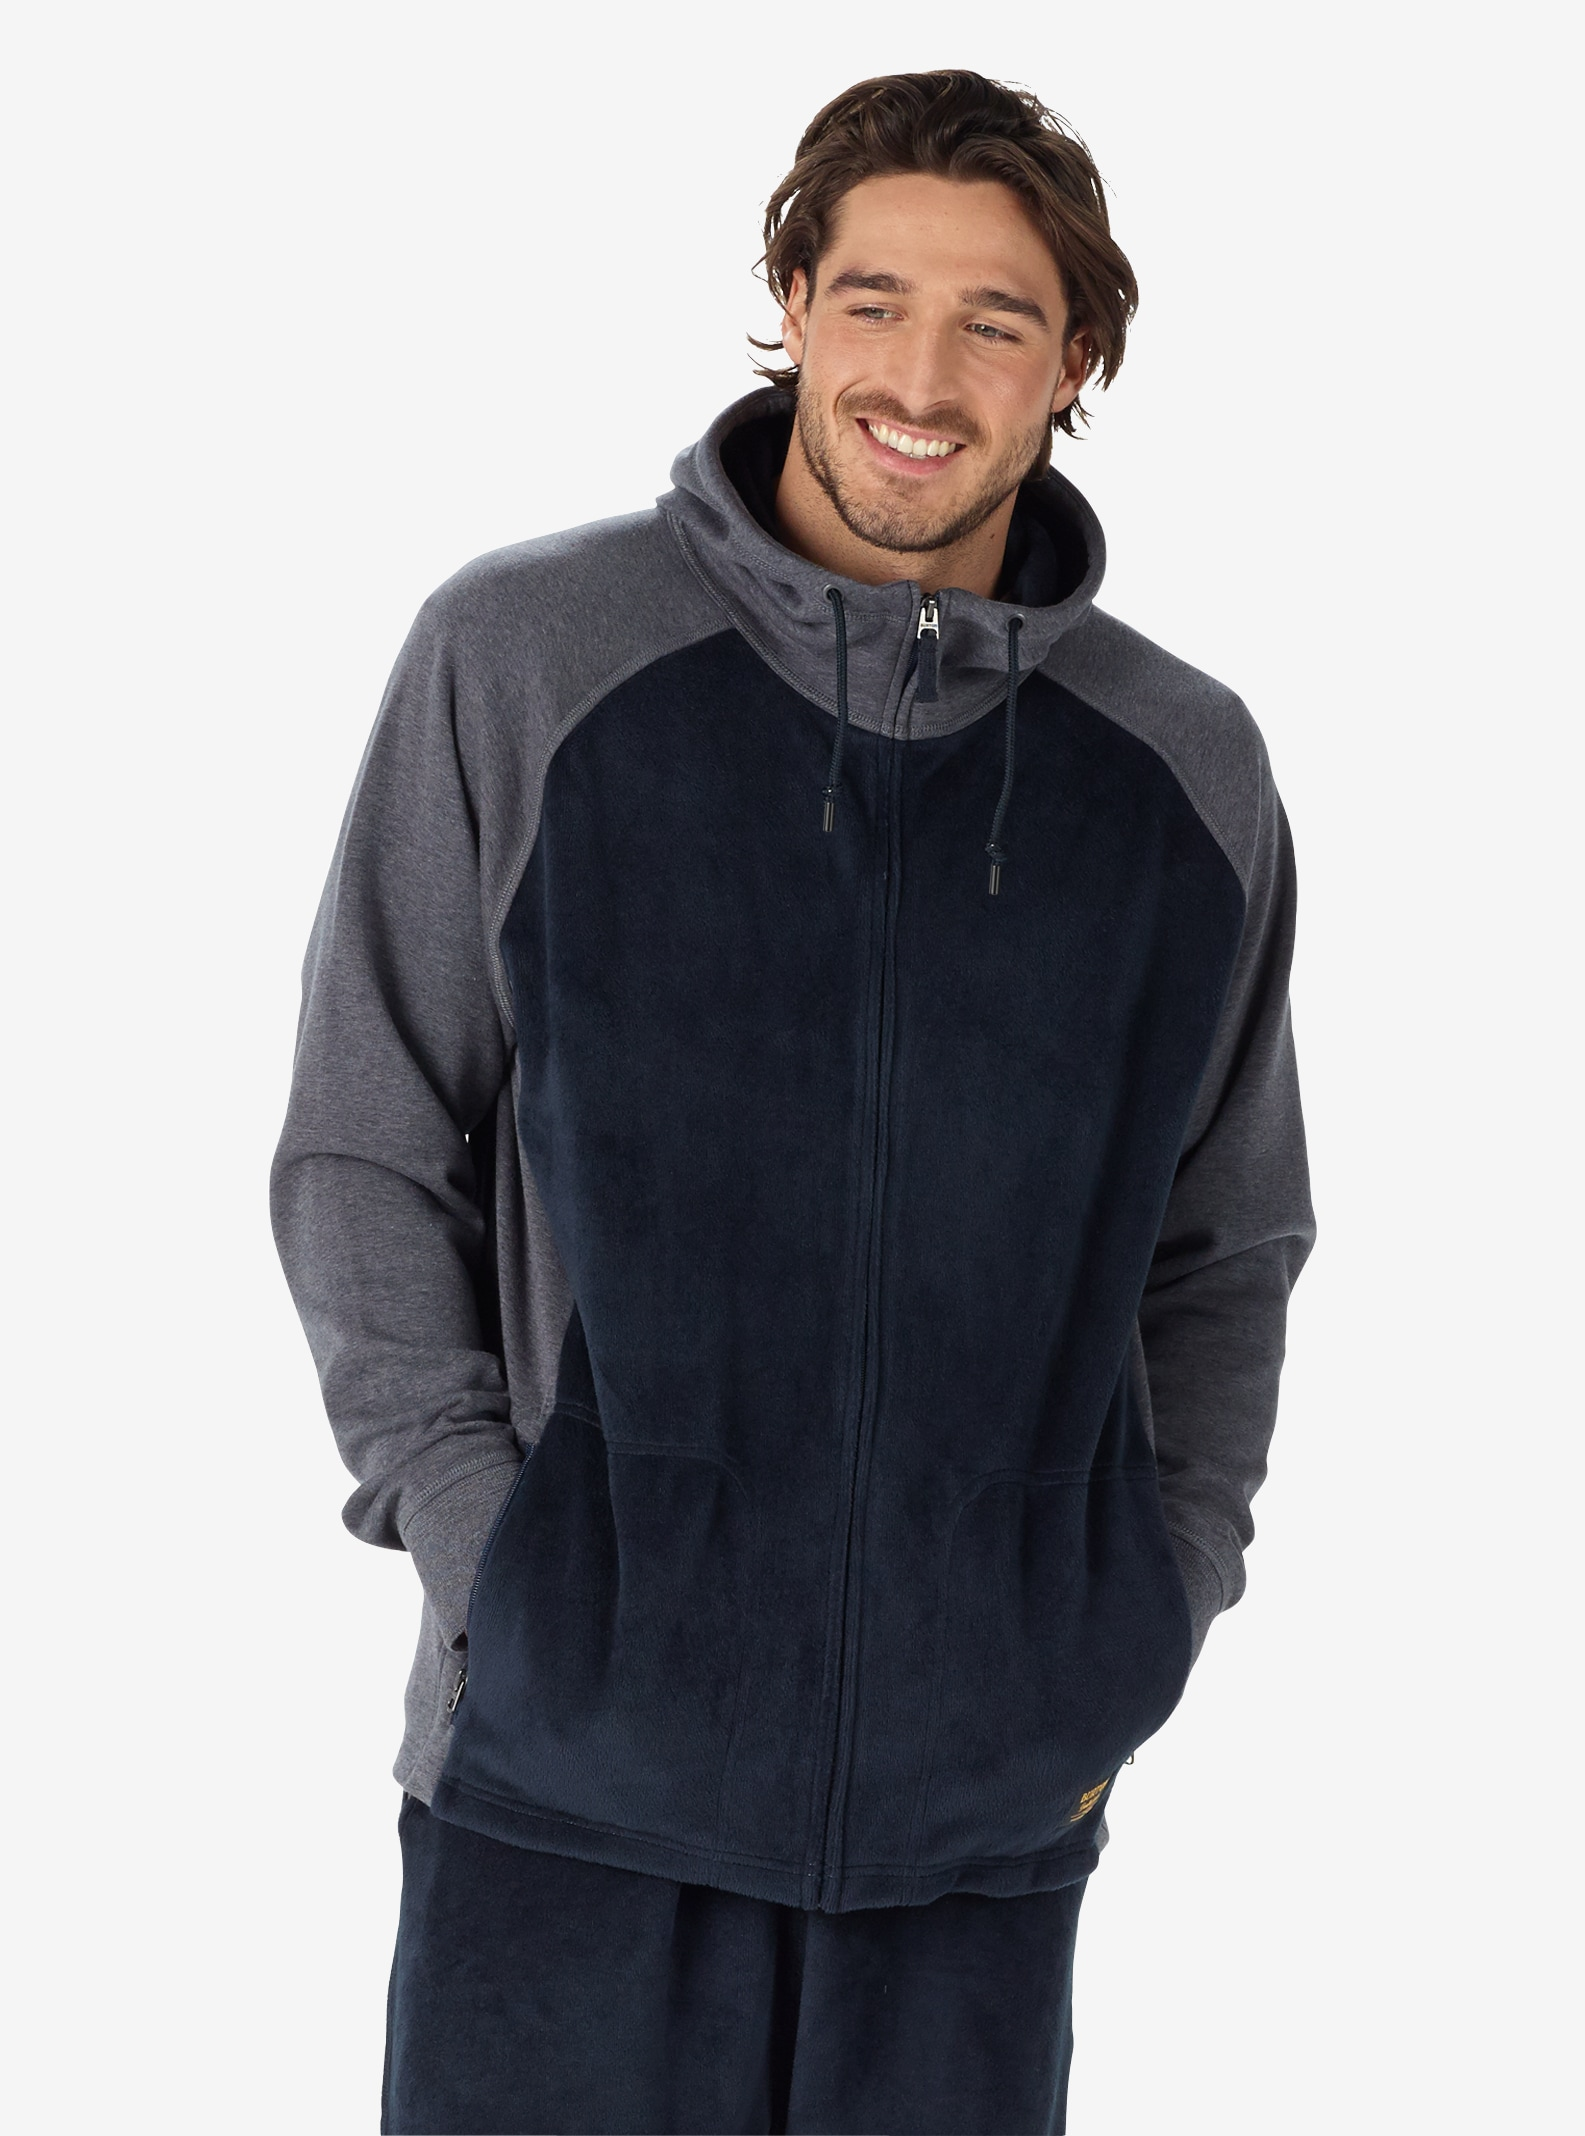 Men's Burton Rolston Full-Zip Fleece shown in Mood Indigo Heather